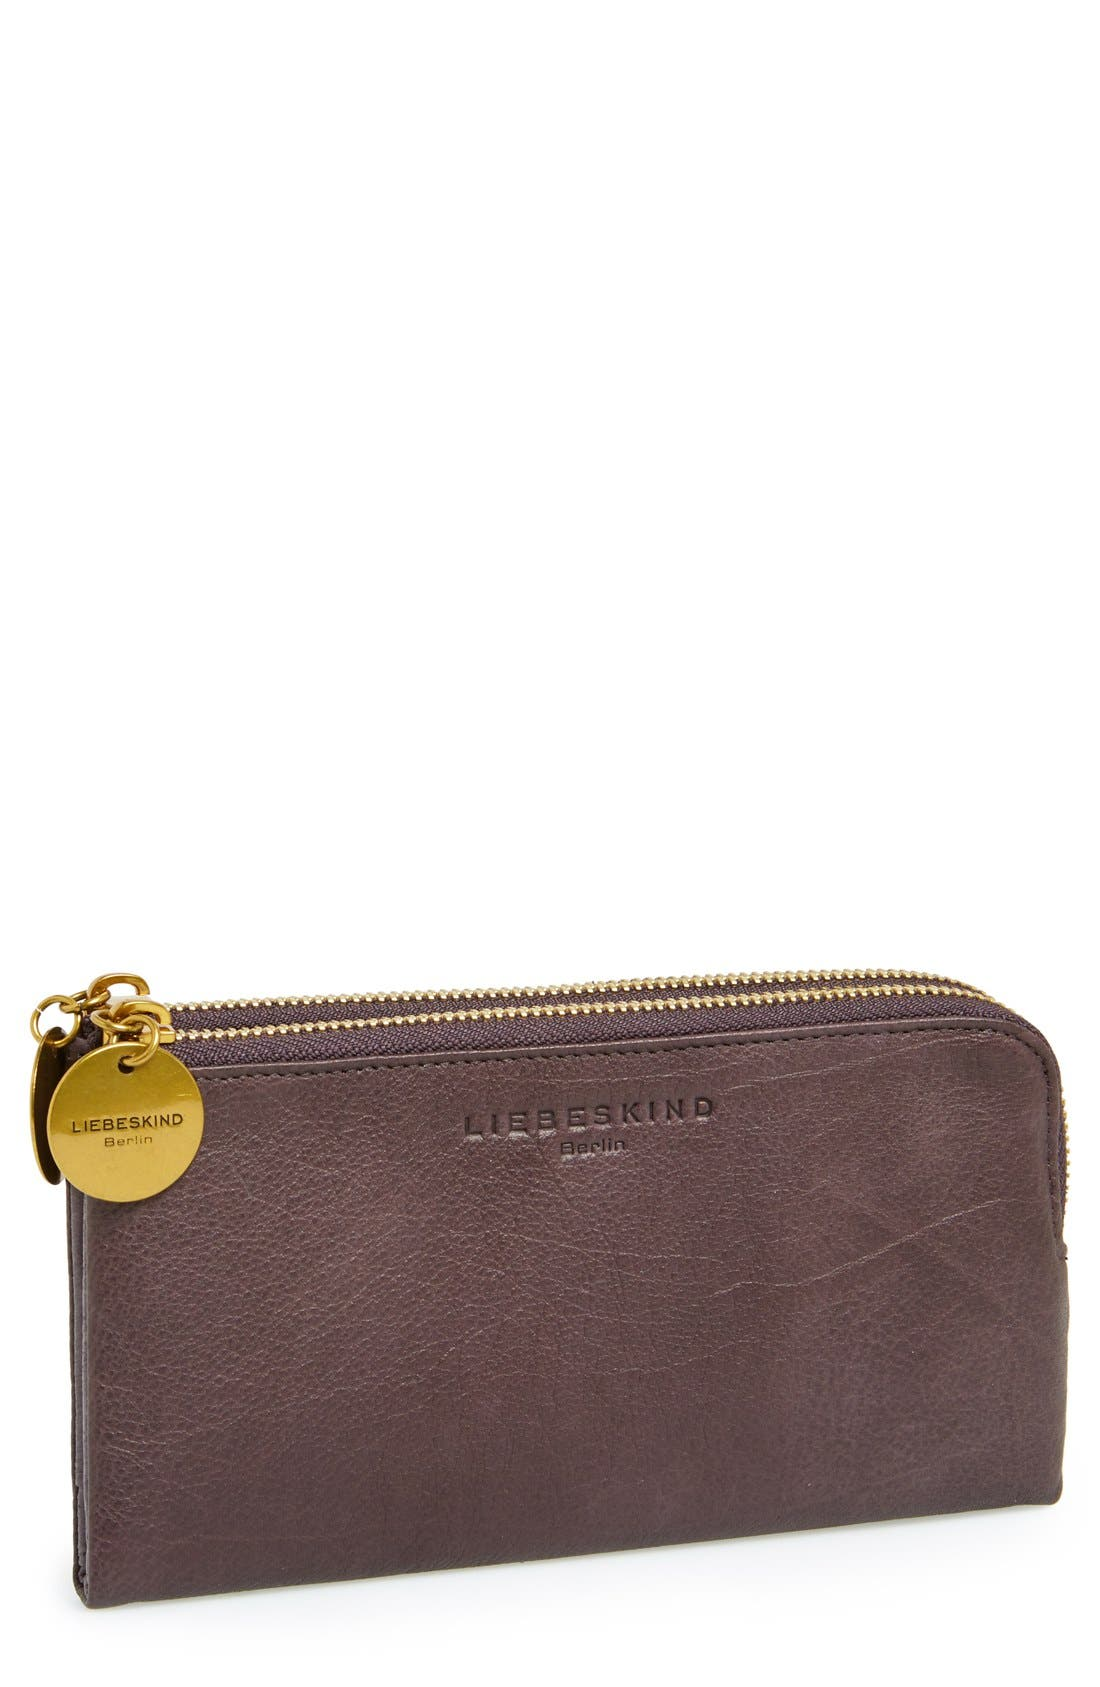 Liebeskind alex clutch wallet nordstrom jpg 1660x2546 Liebeskind brown alex  wallet womens 1cd07e4f59997